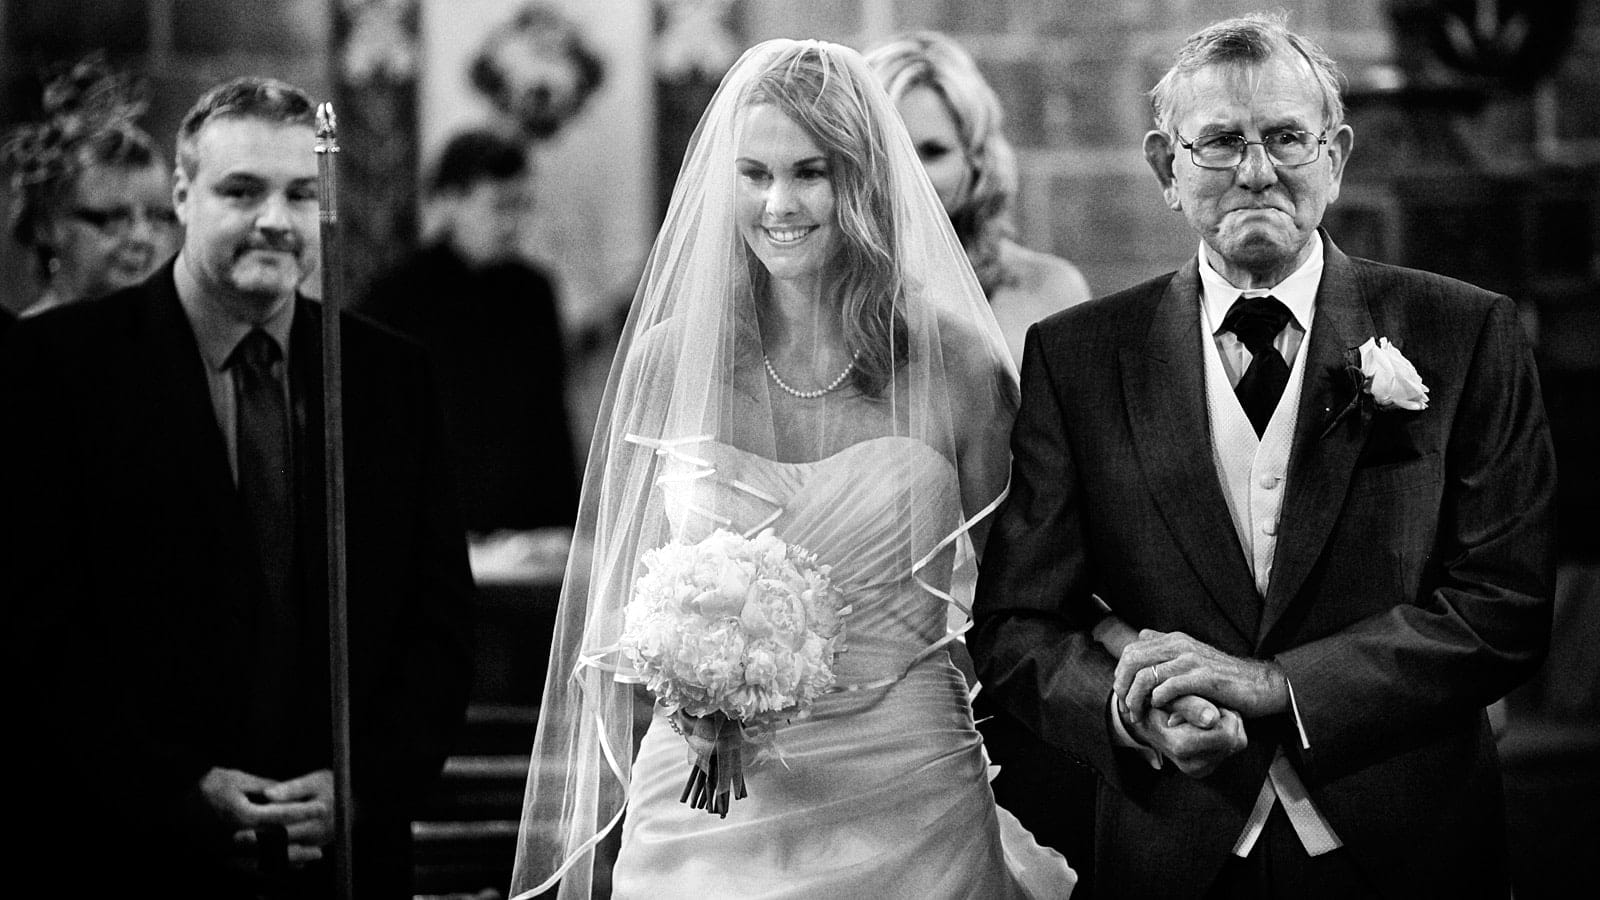 Emotional Wedding Photographs Posted In